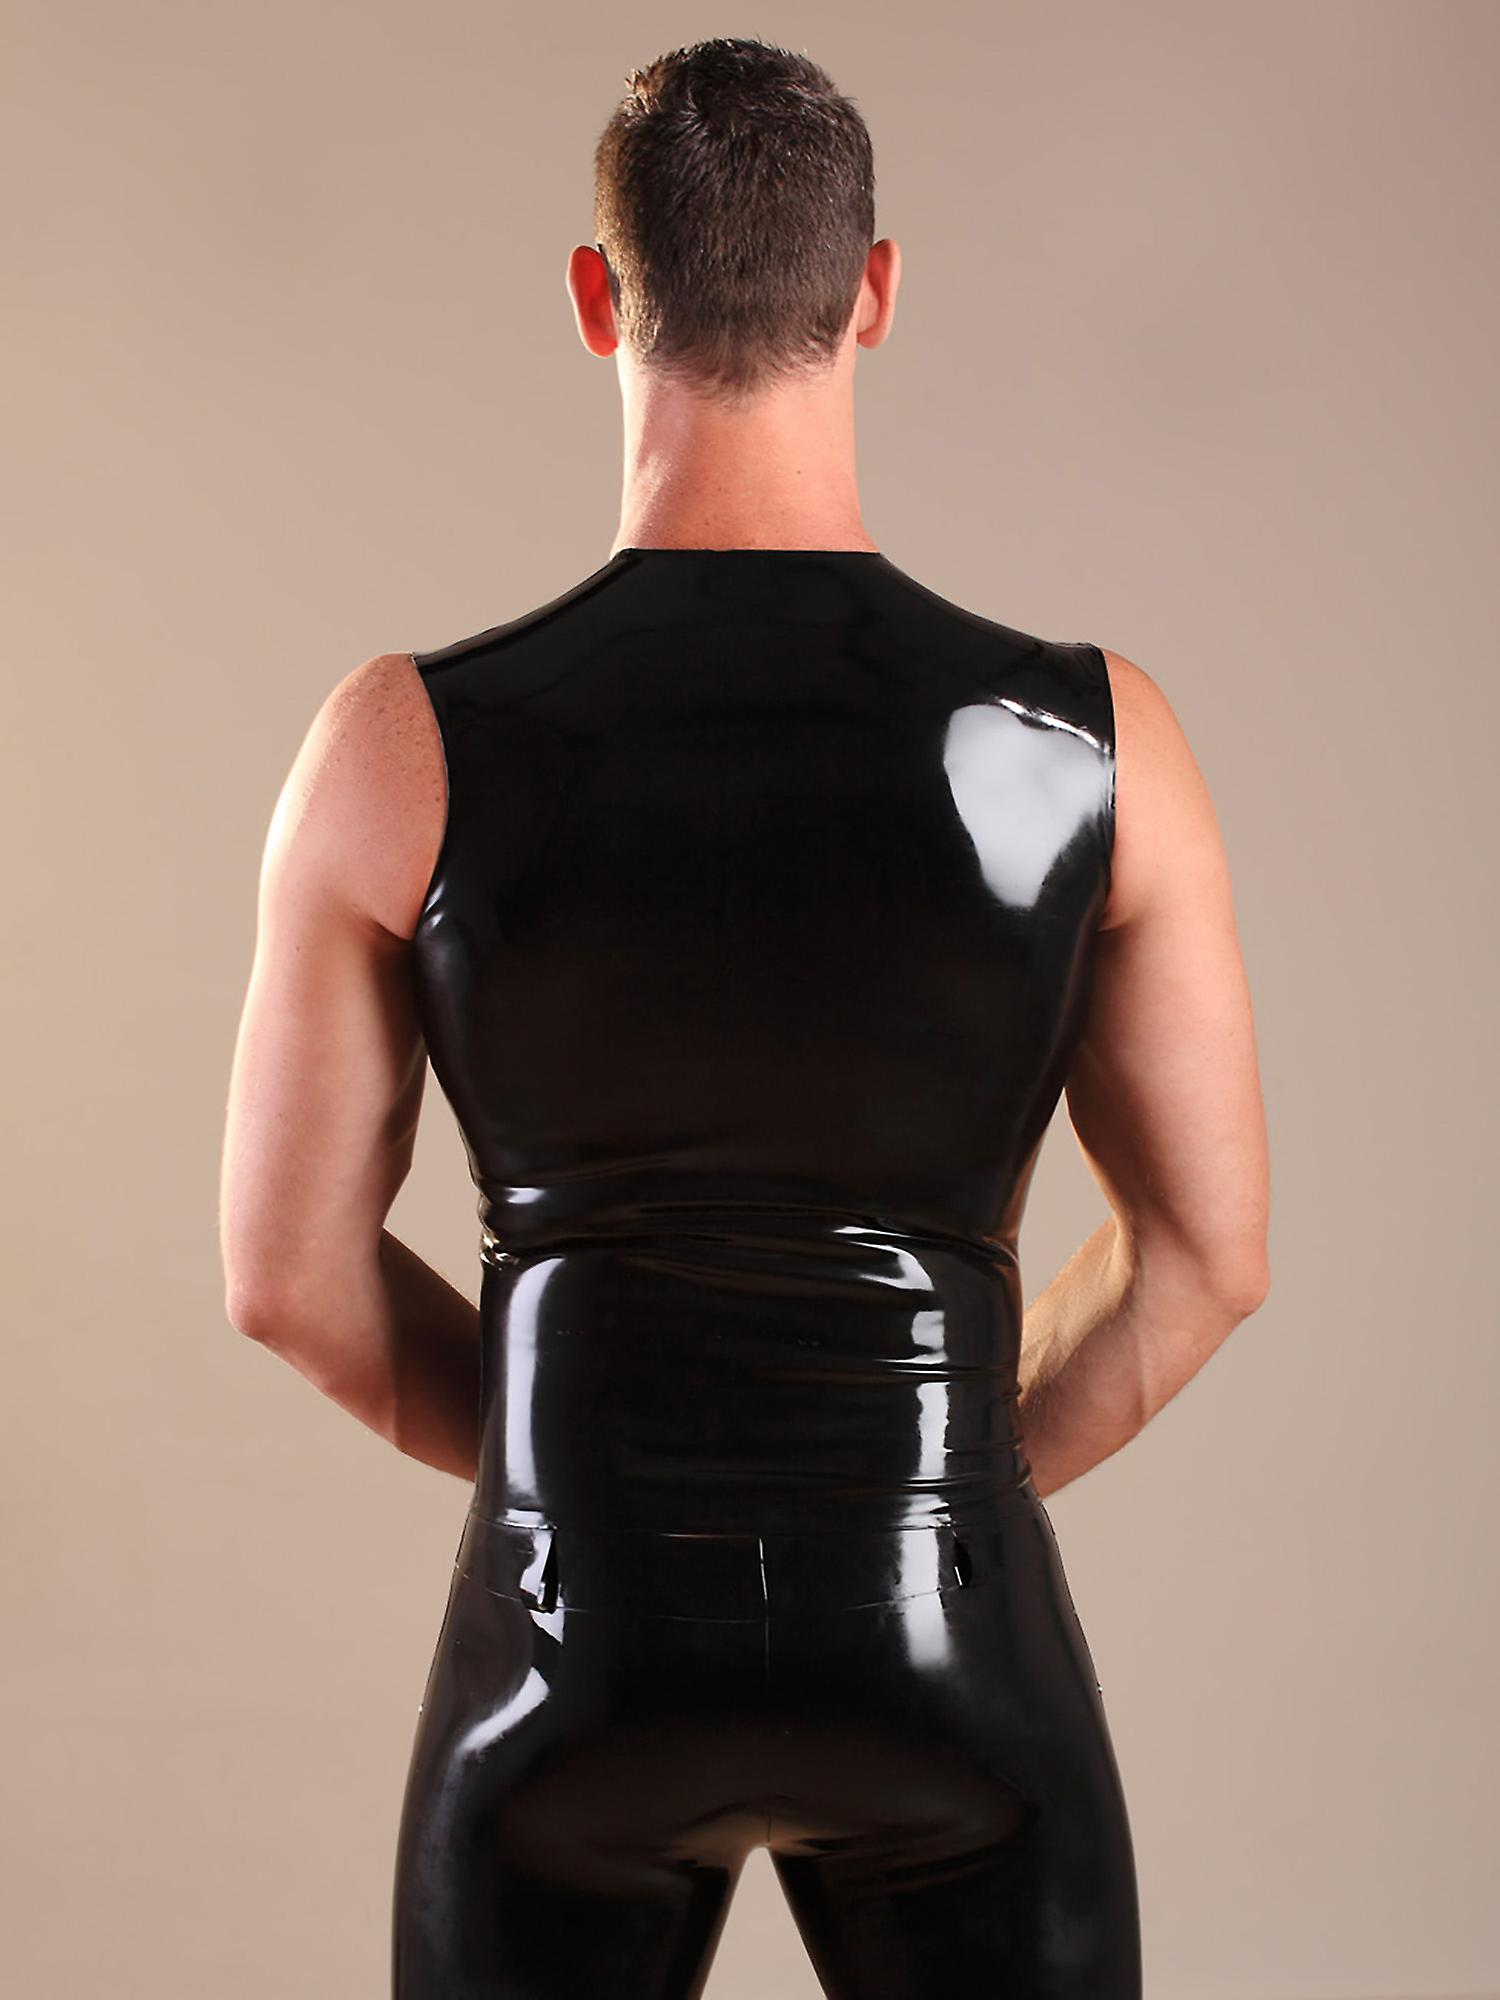 Honour Men's Sexy T Shirt in Latex Rubber Black Sleeveless Top Round Neck